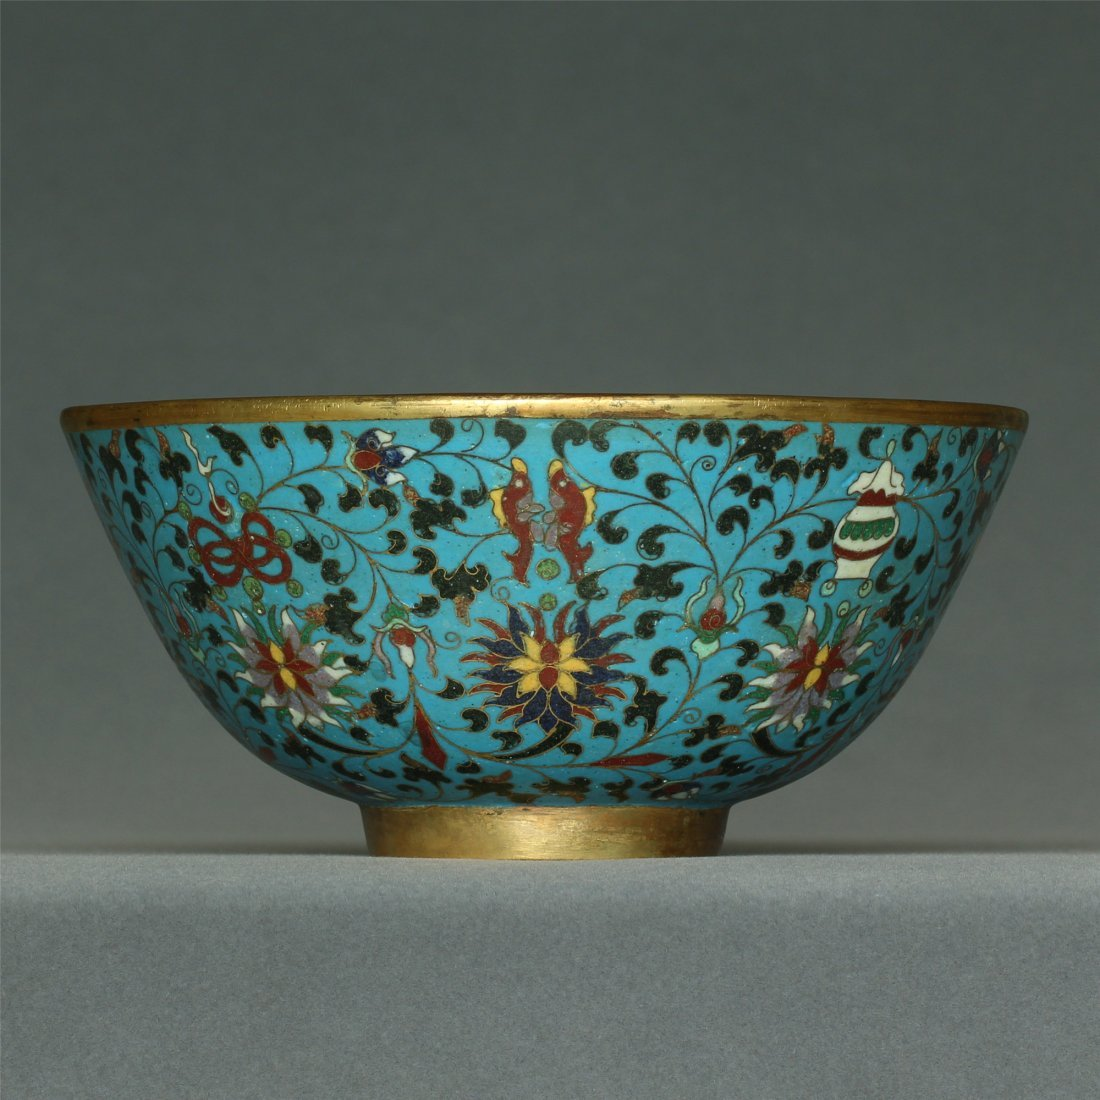 Cloisonne gilt bowl of Ming Dynasty JingTai mark.